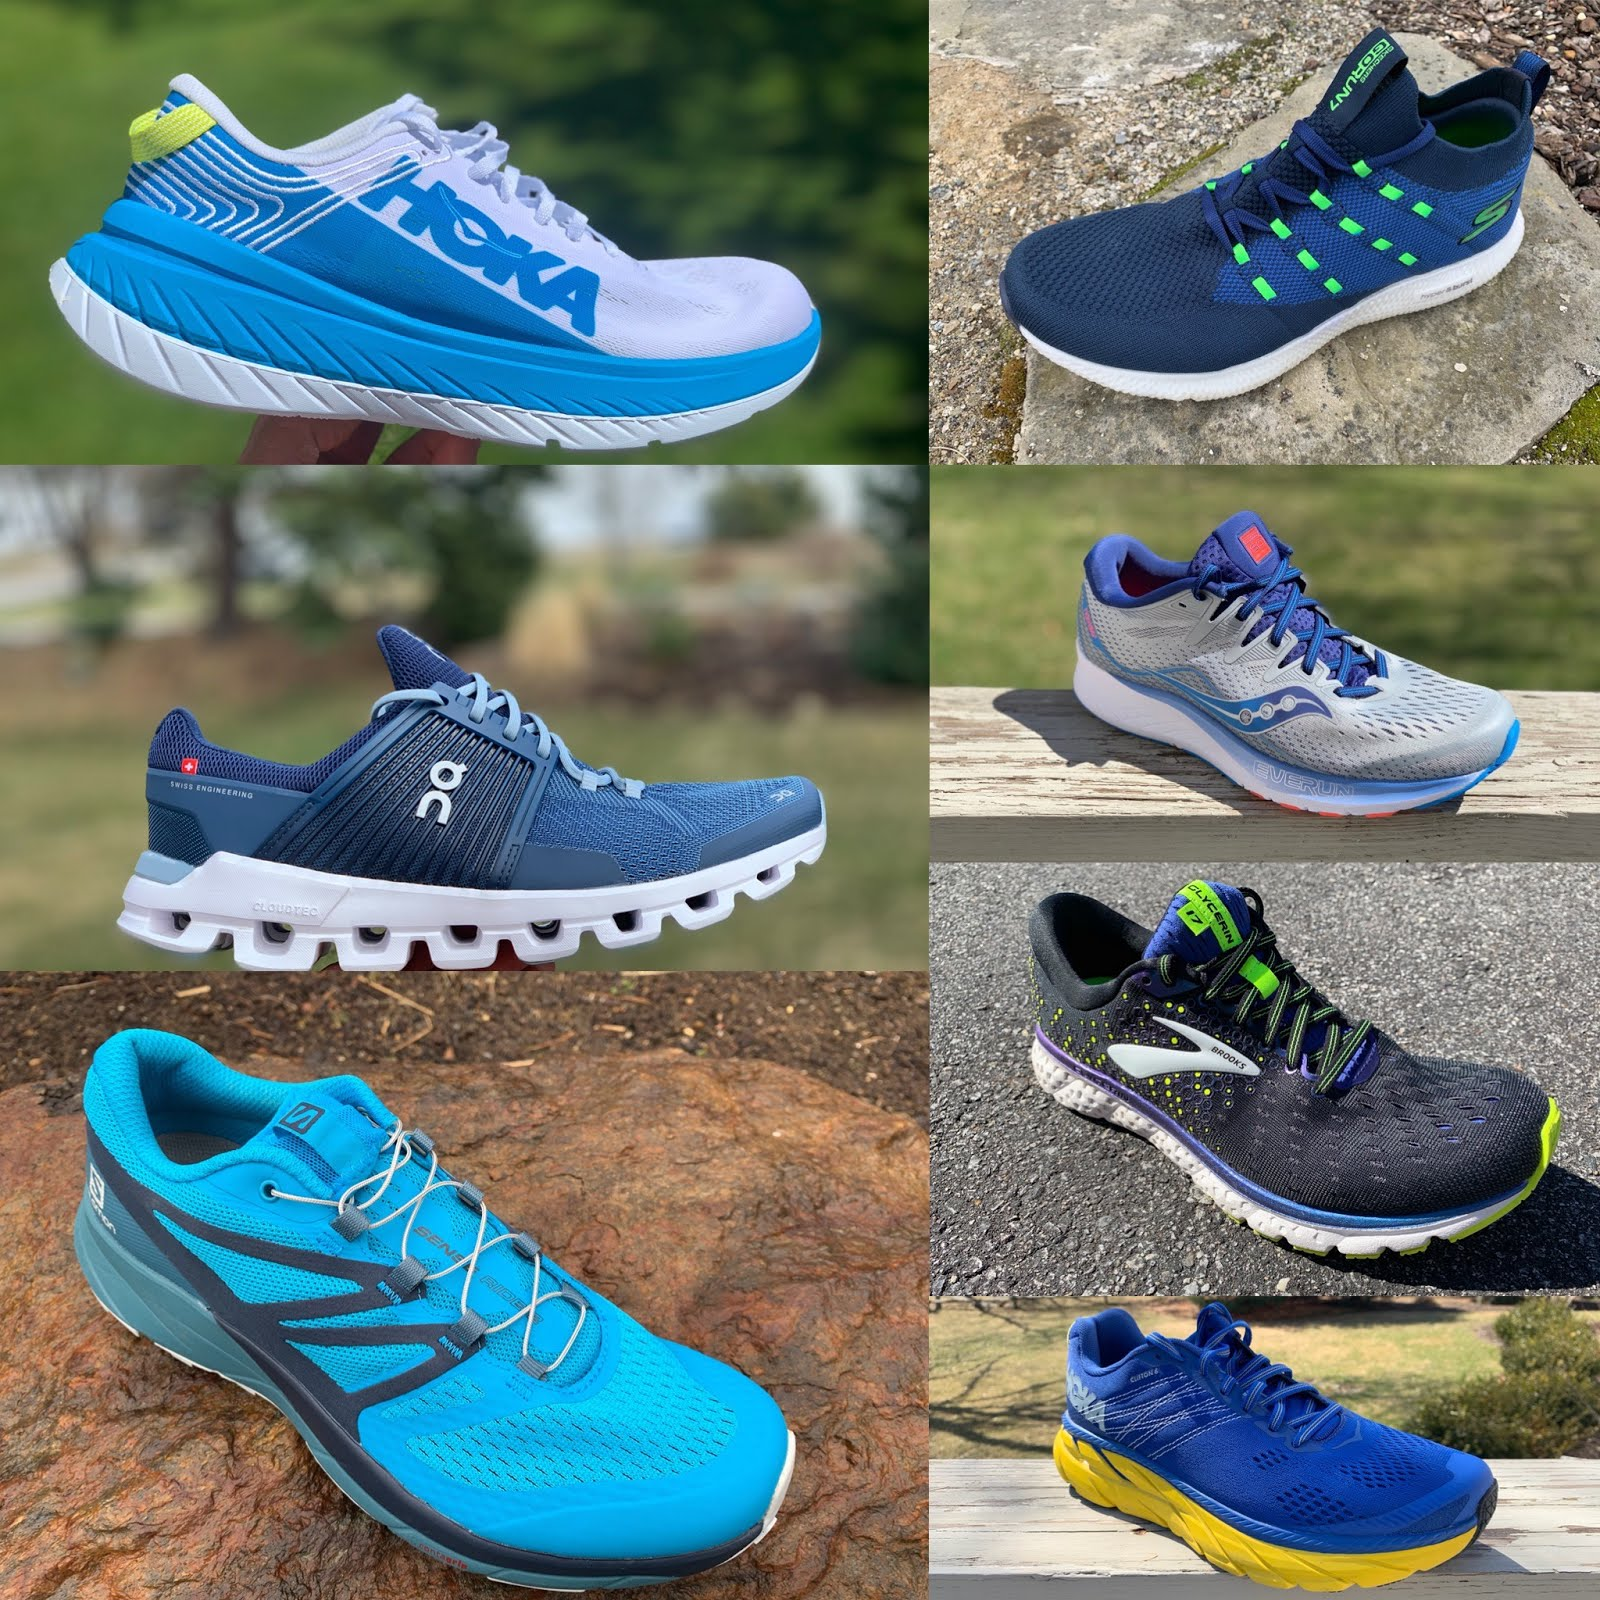 Blue Warm And Windproof Straightforward Brooks Caldera 2 Mens Trail Running Shoes Athletic Shoes